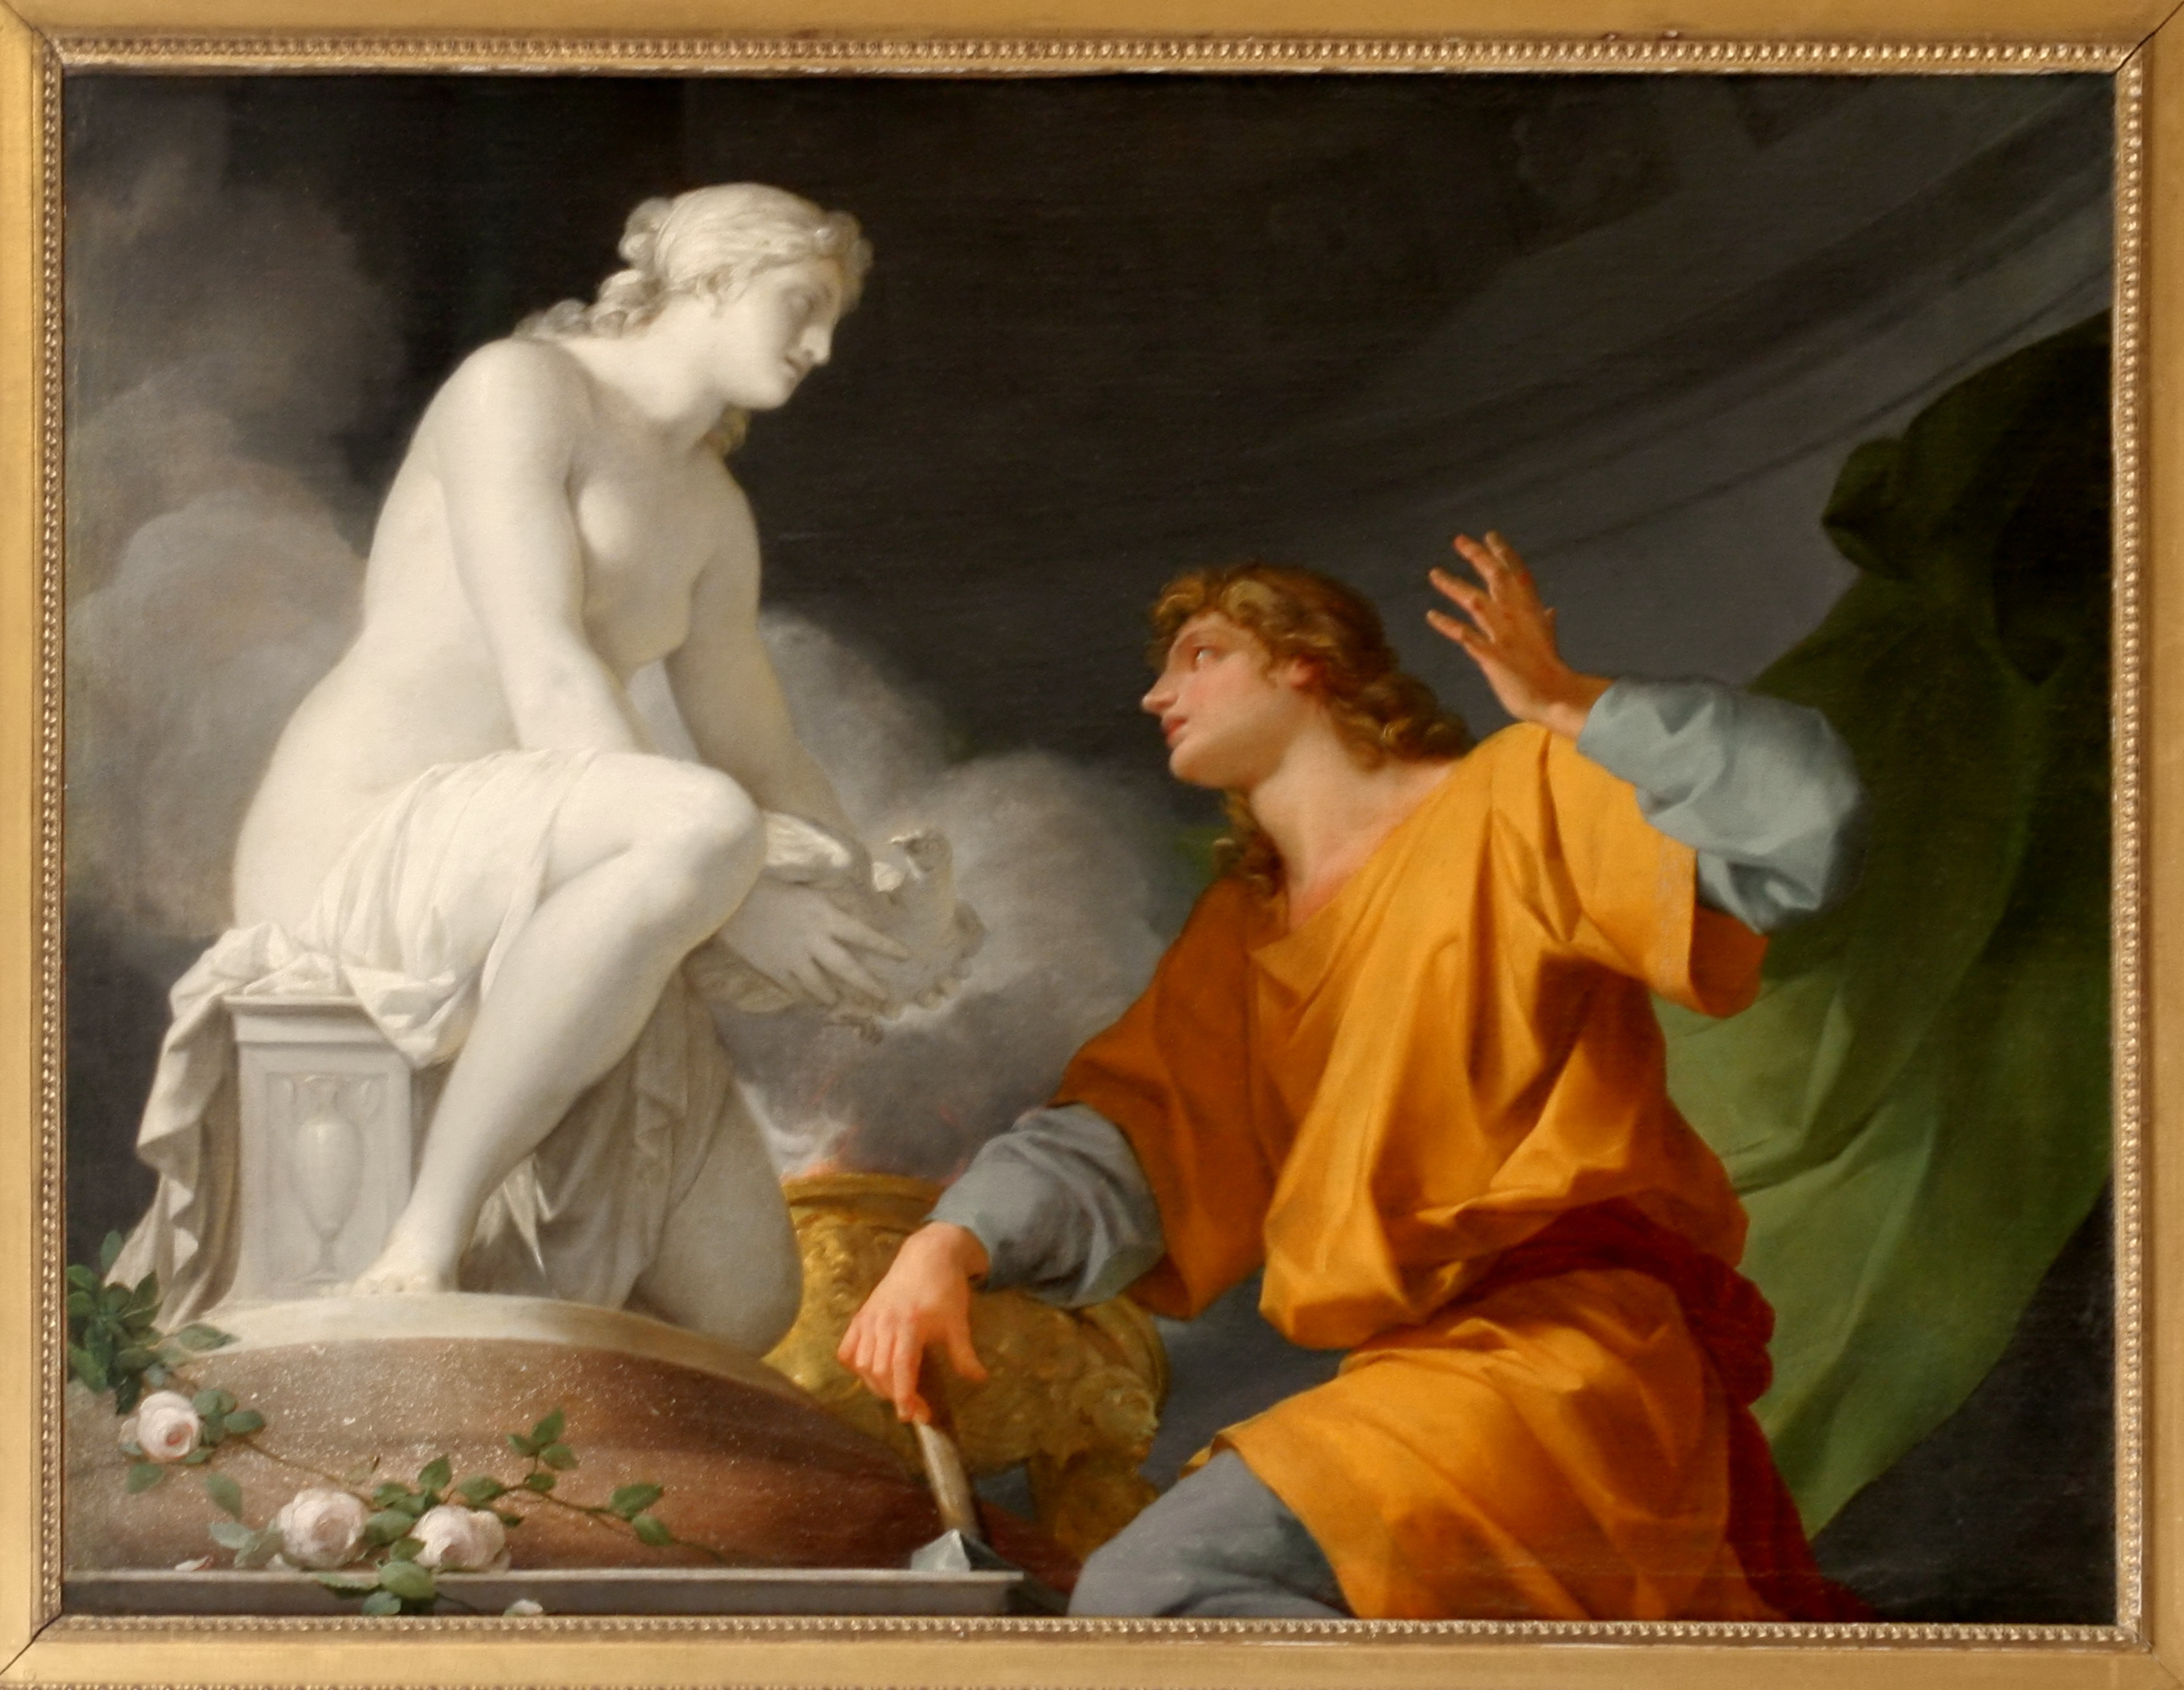 A painting of Pygmalion and his statue, inspired by the ancient Pygmalion myth. The Pygmalion Effect was named after this myth